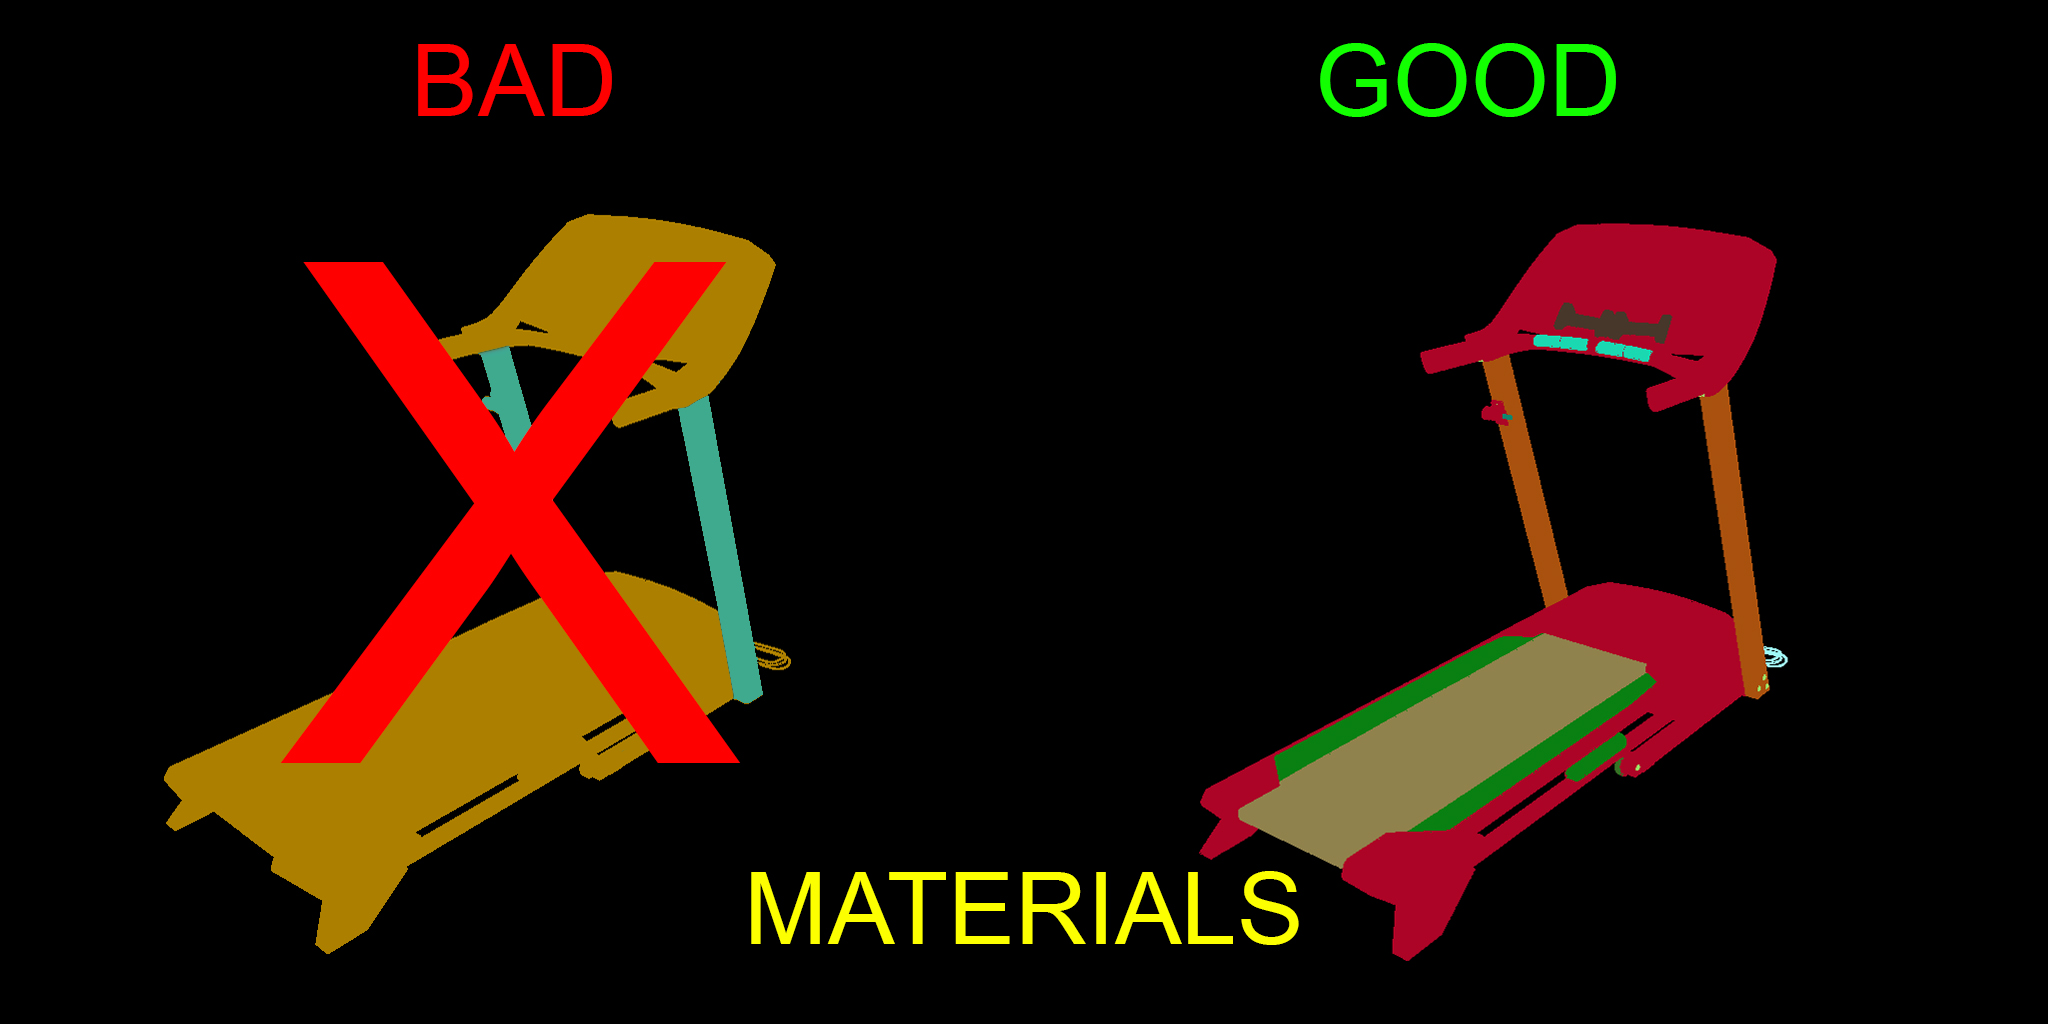 Treadmill_GoodvBad_Bad